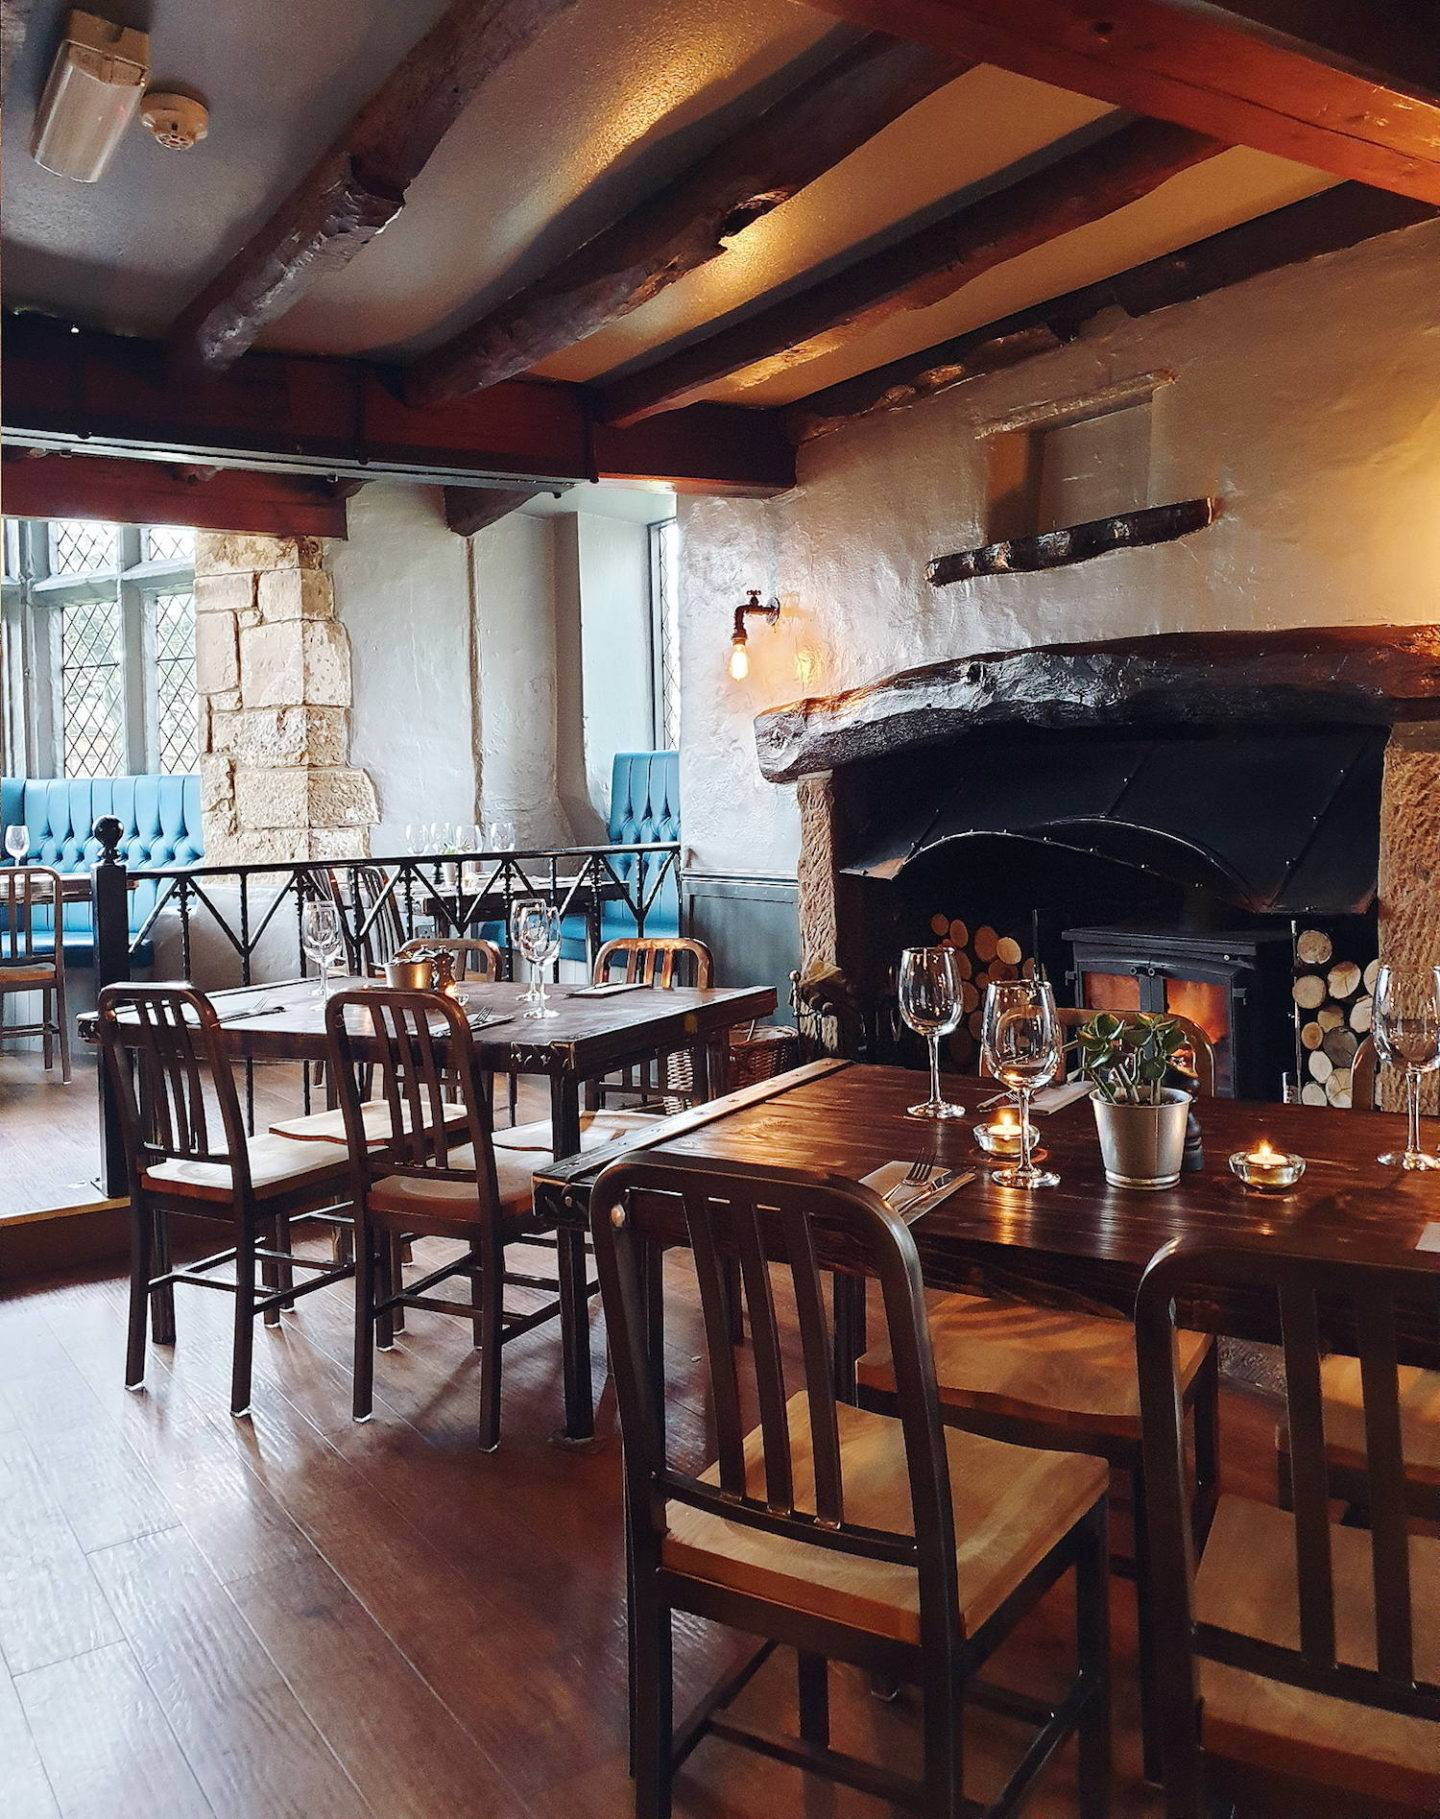 1189 Restaurant review: Walworth Castle Hotel's new bar and kitchen